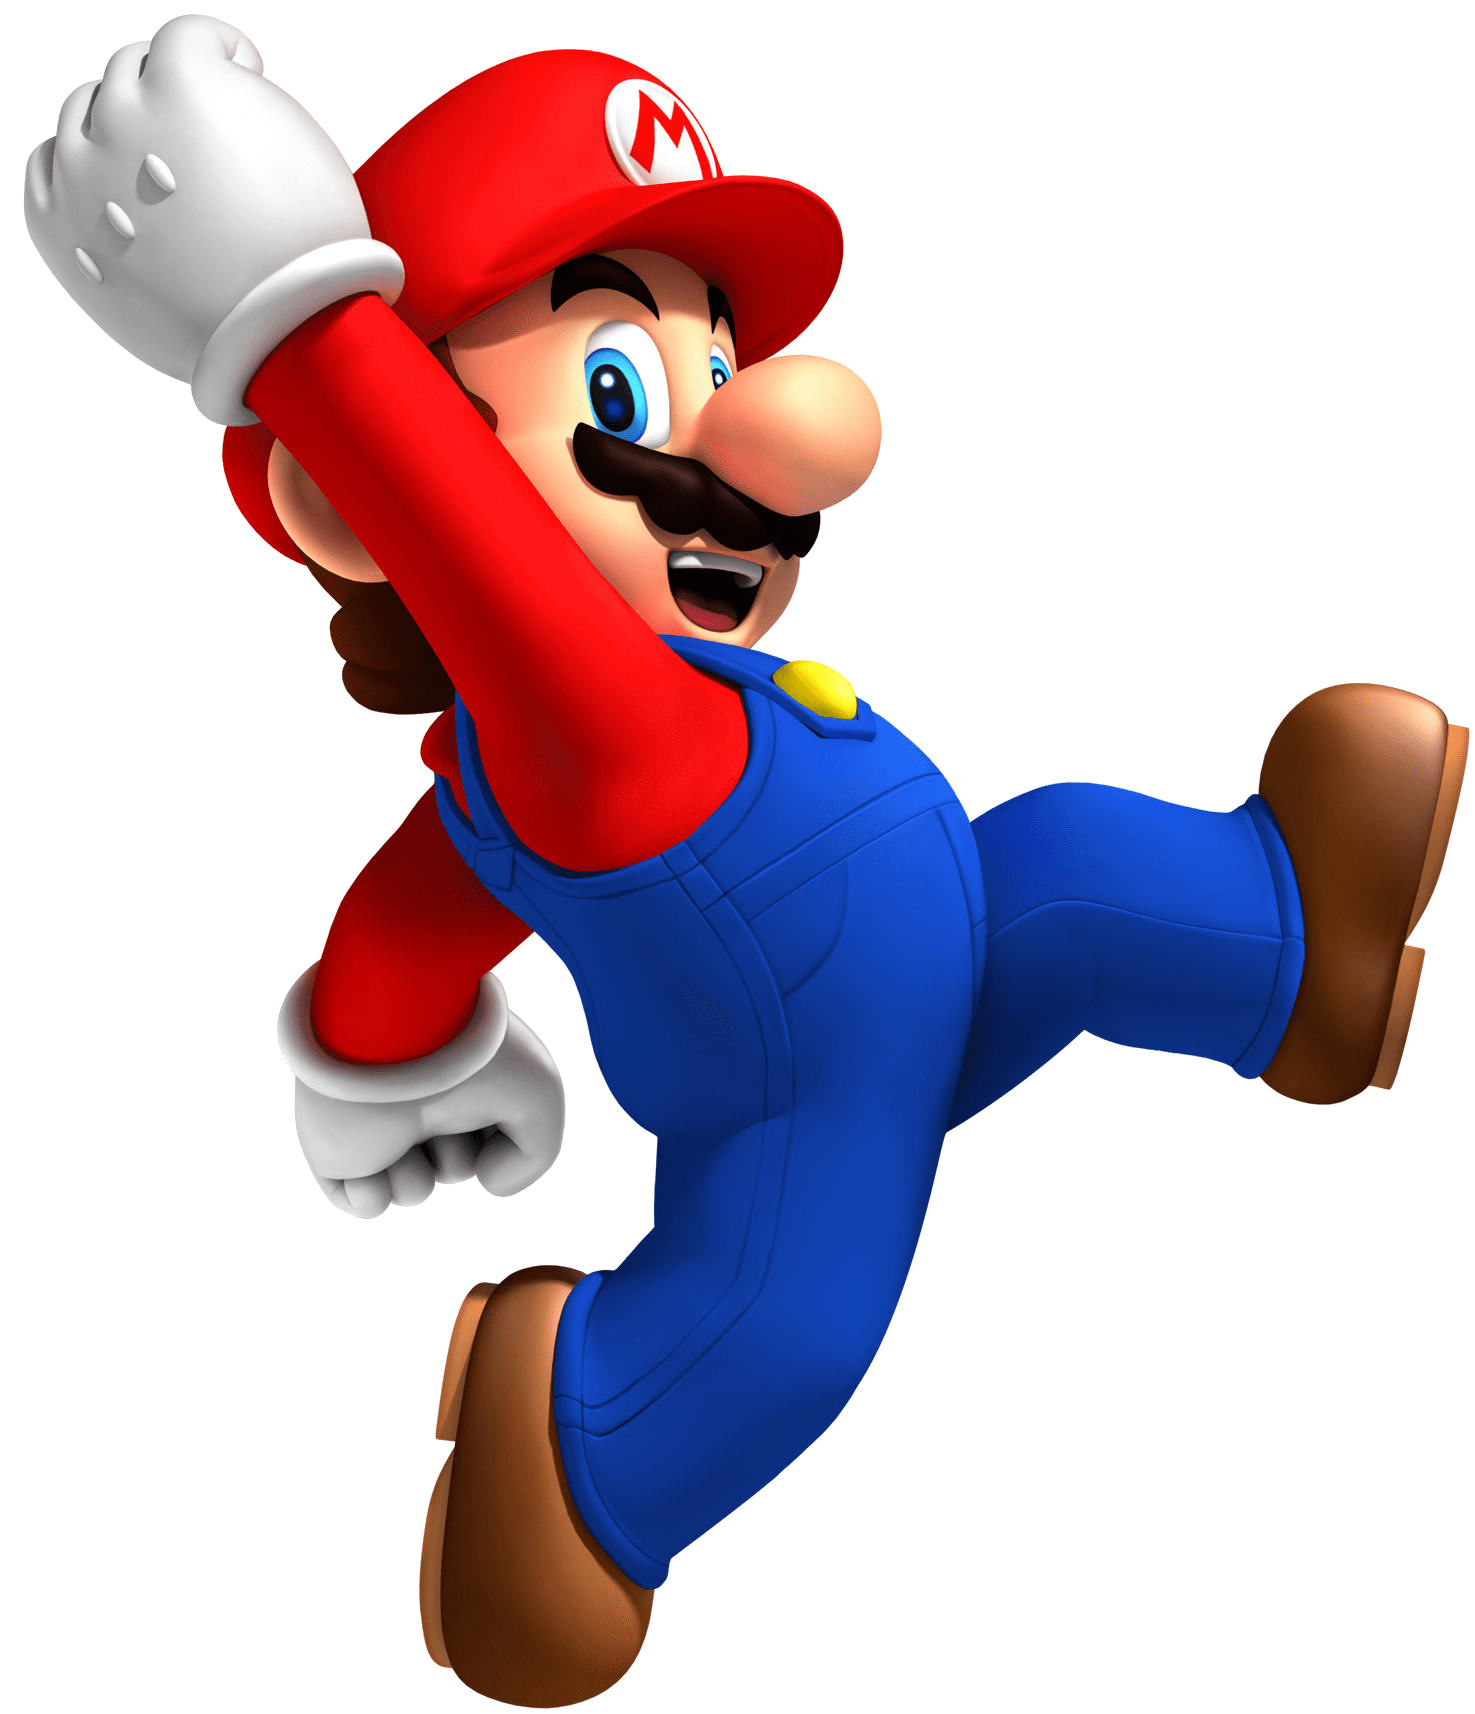 Mario backgrounds png. Running transparent stickpng download